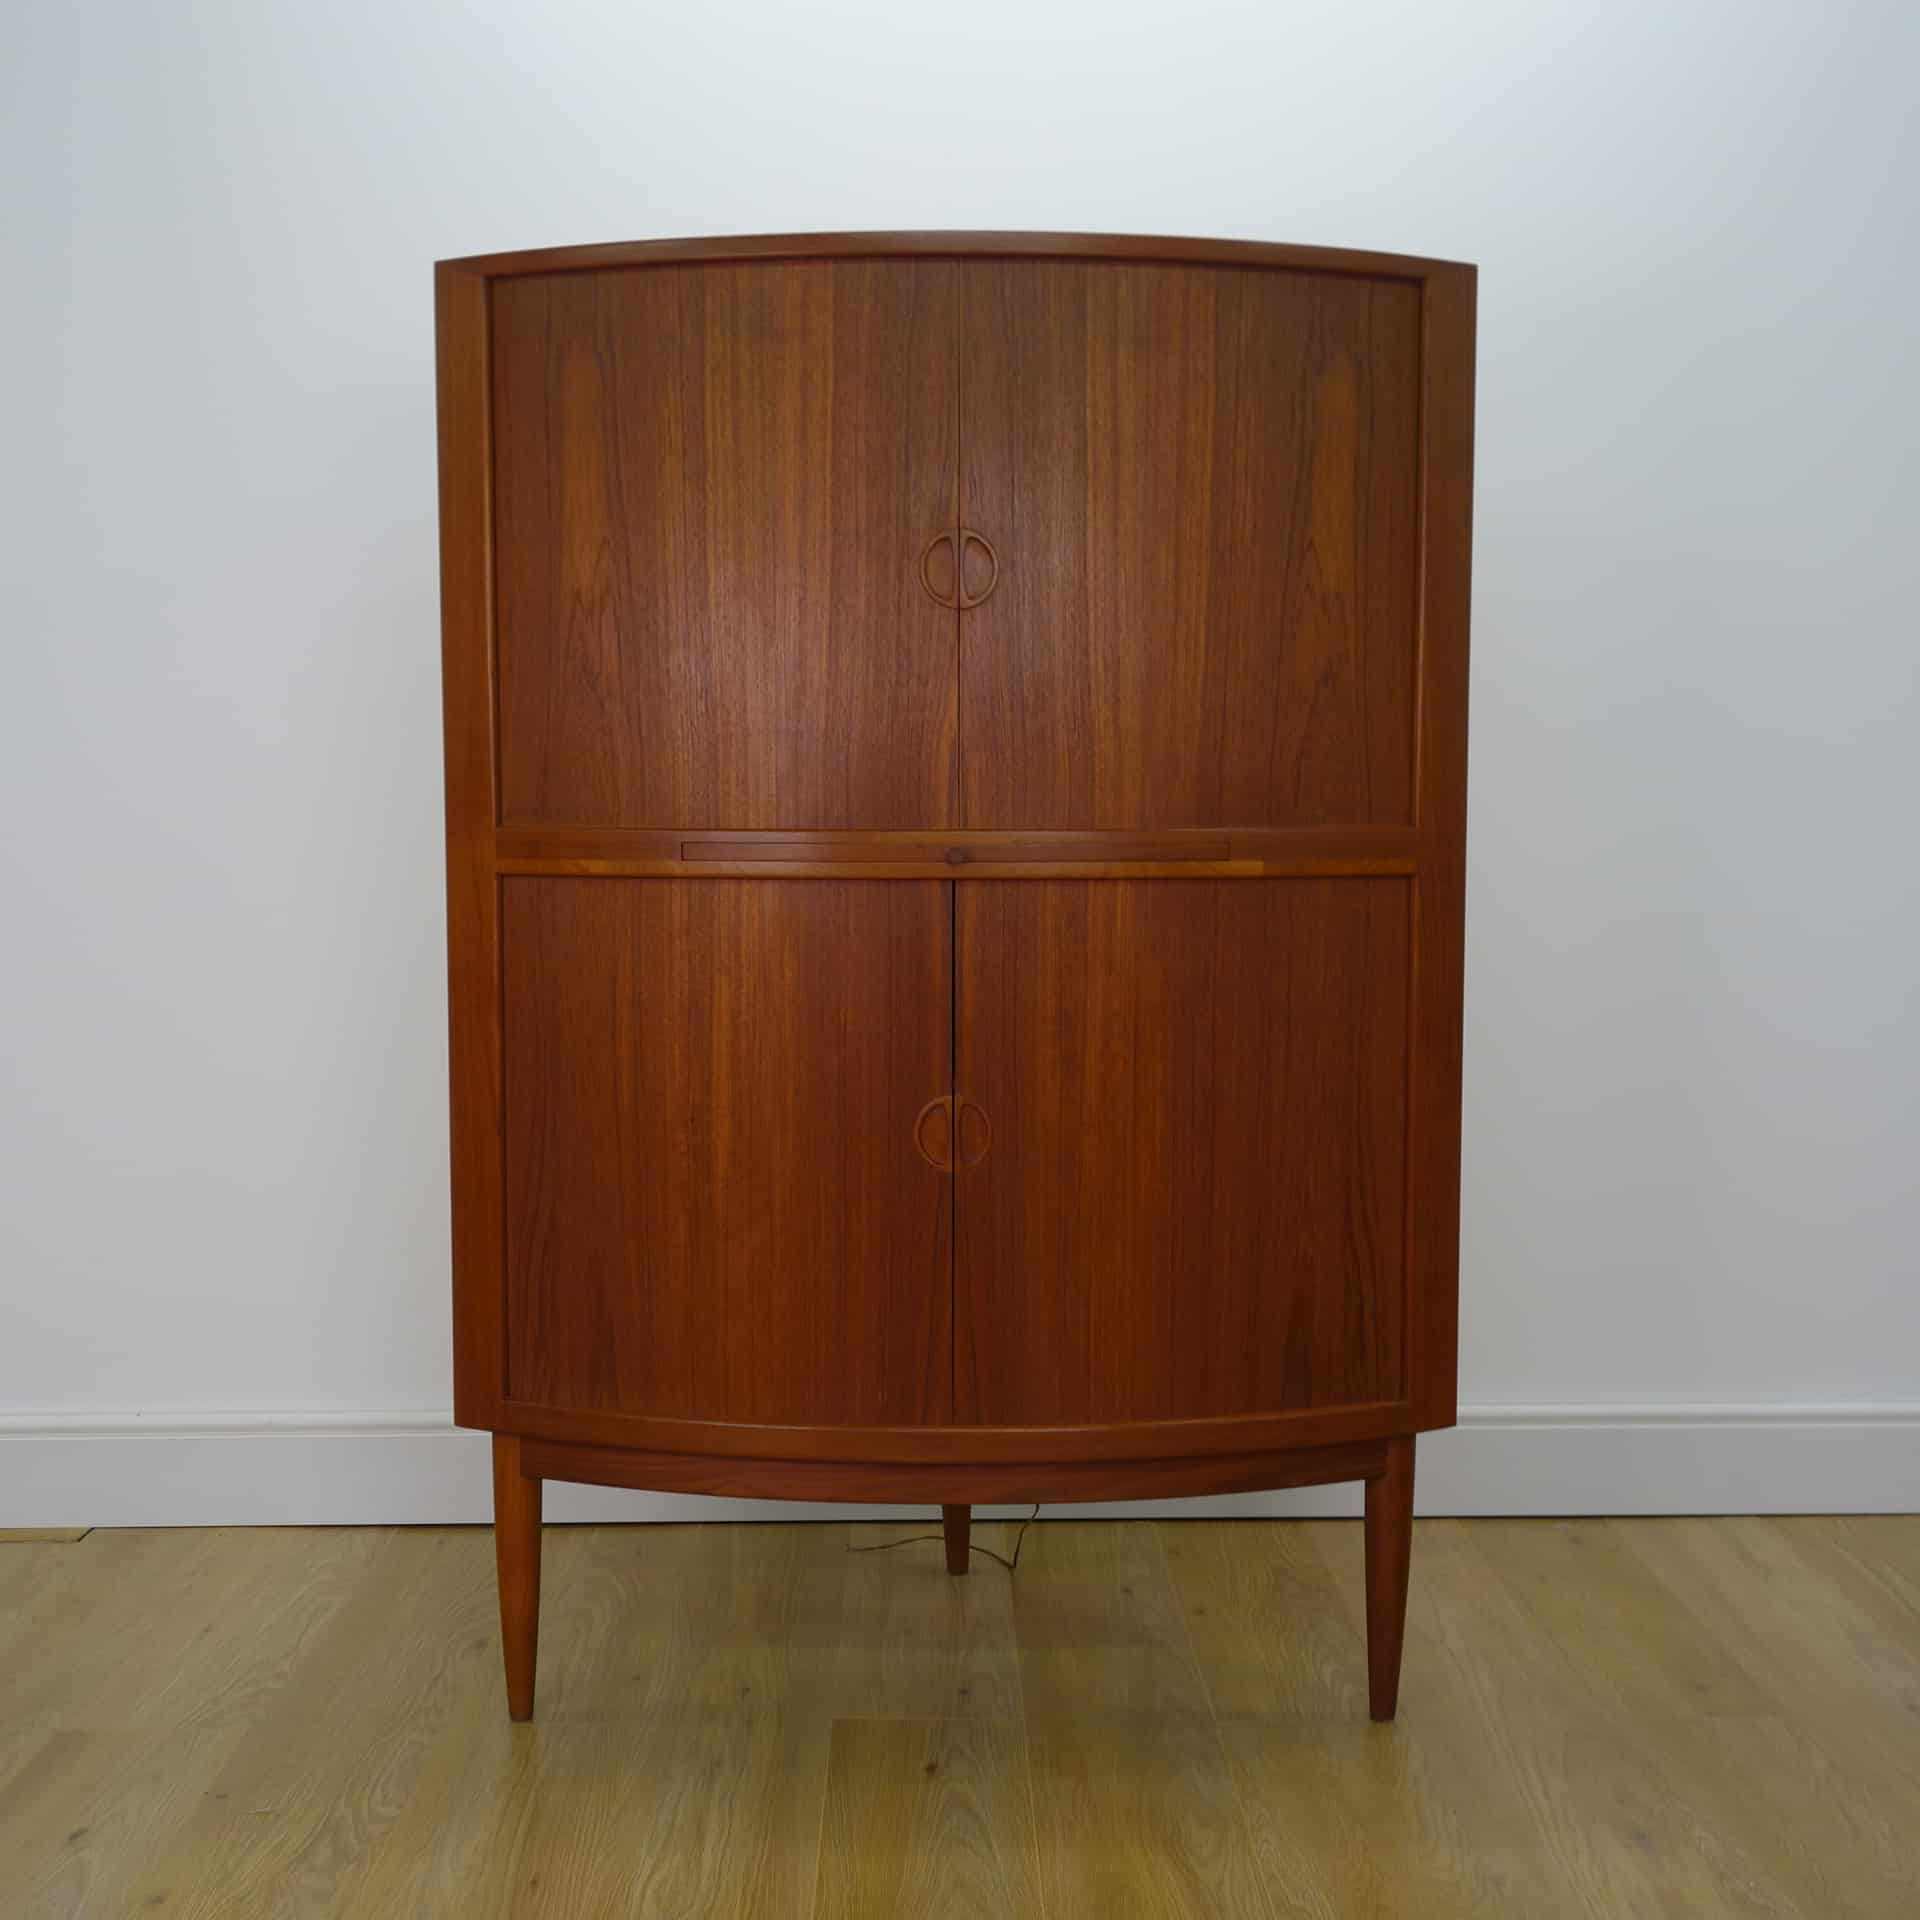 1960s Danish teak corner cocktail cabinet